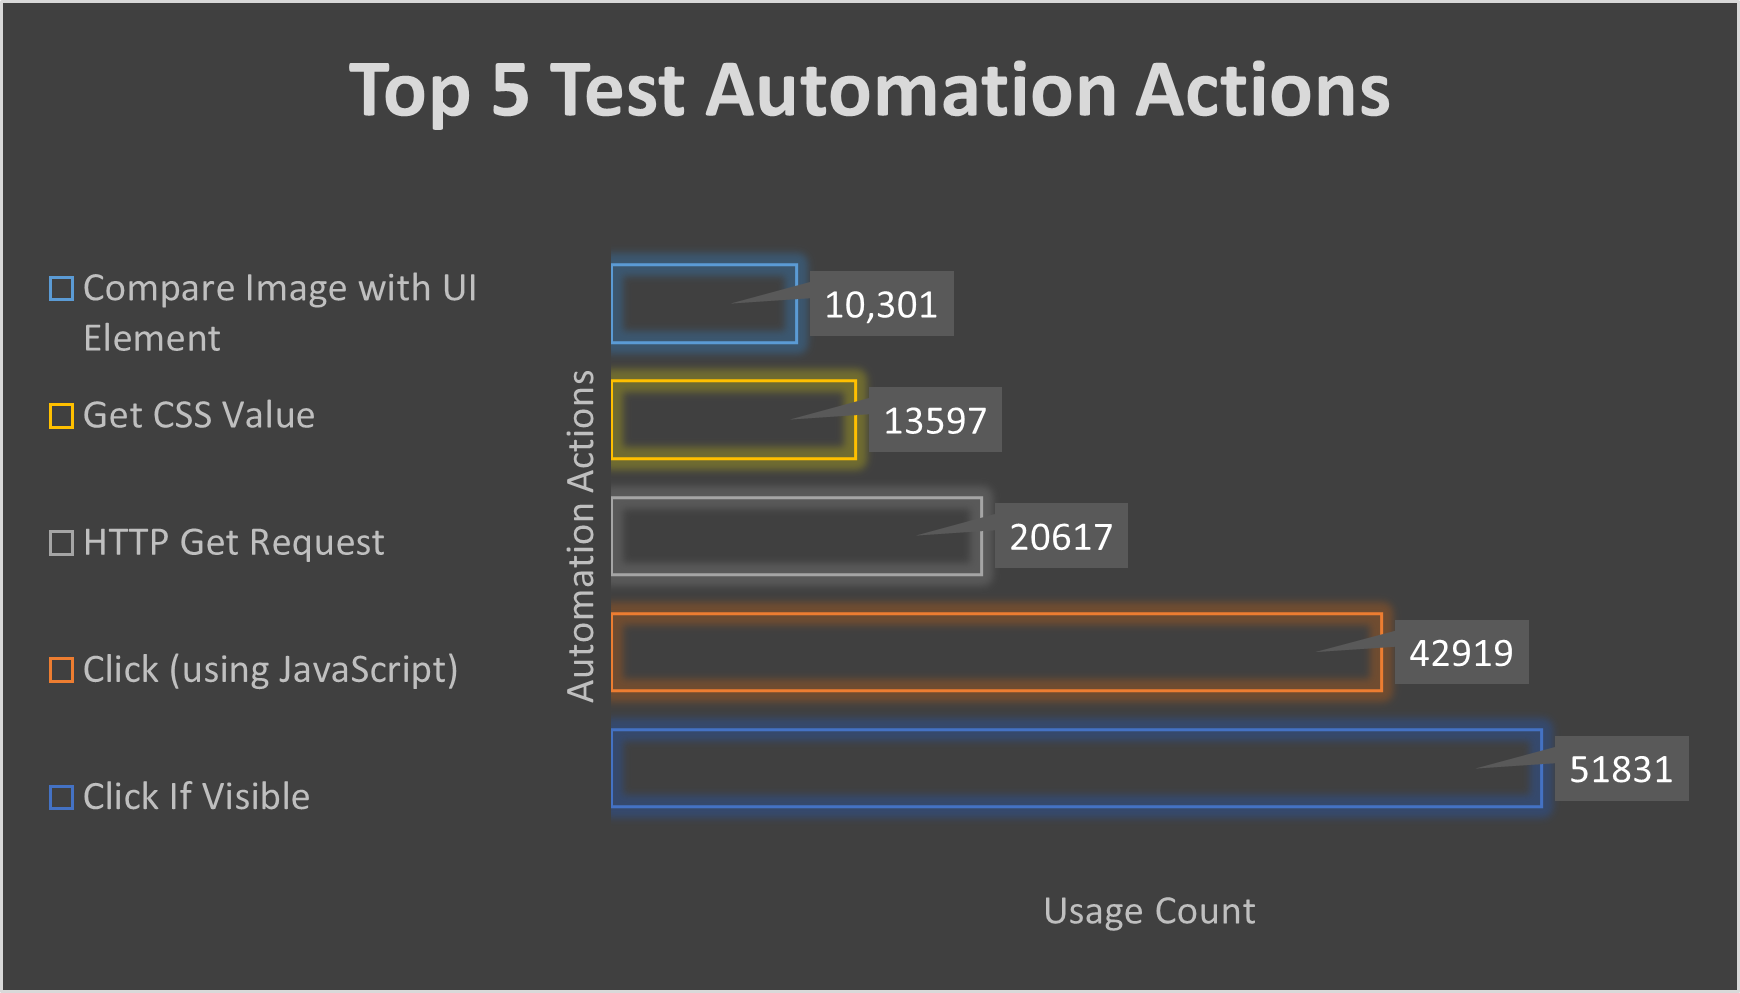 Top 5 Test Automation Actions